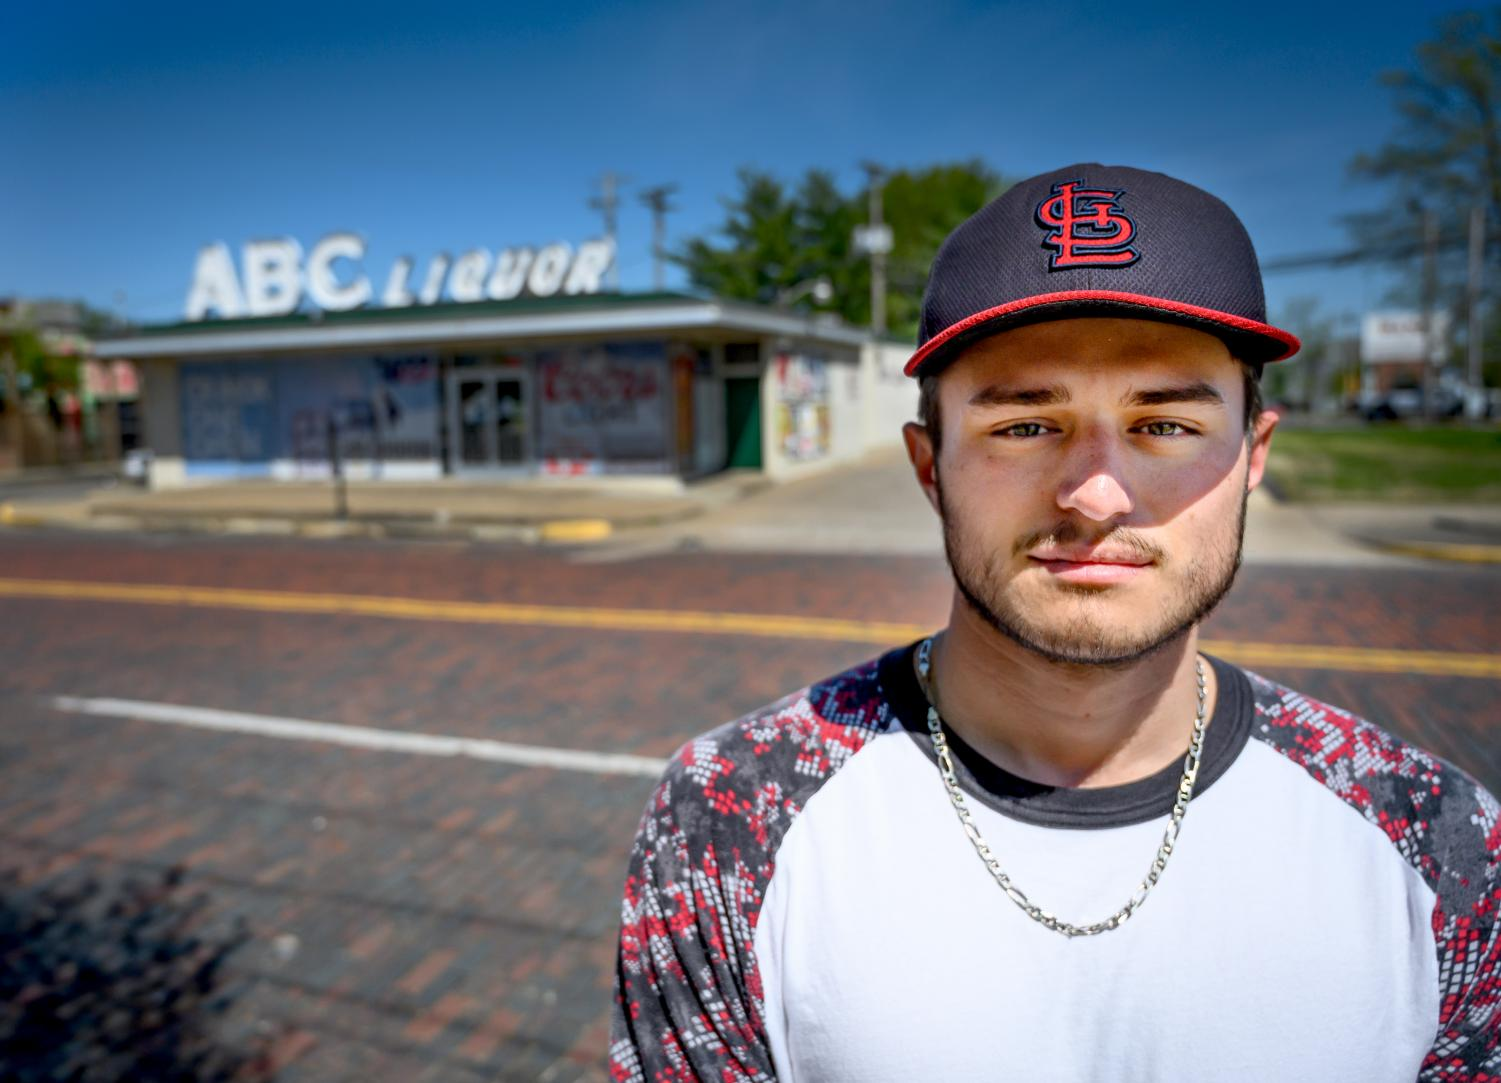 Skyler Cantrell, 21, of Altona, poses for a portrait on Tuesday, April 16, 2019, outside of ABC Liquor Mart in Carbondale. Cantrell, an Altona volunteer firefighter, was on the scene of a four person shooting late Friday night in Carbondale.